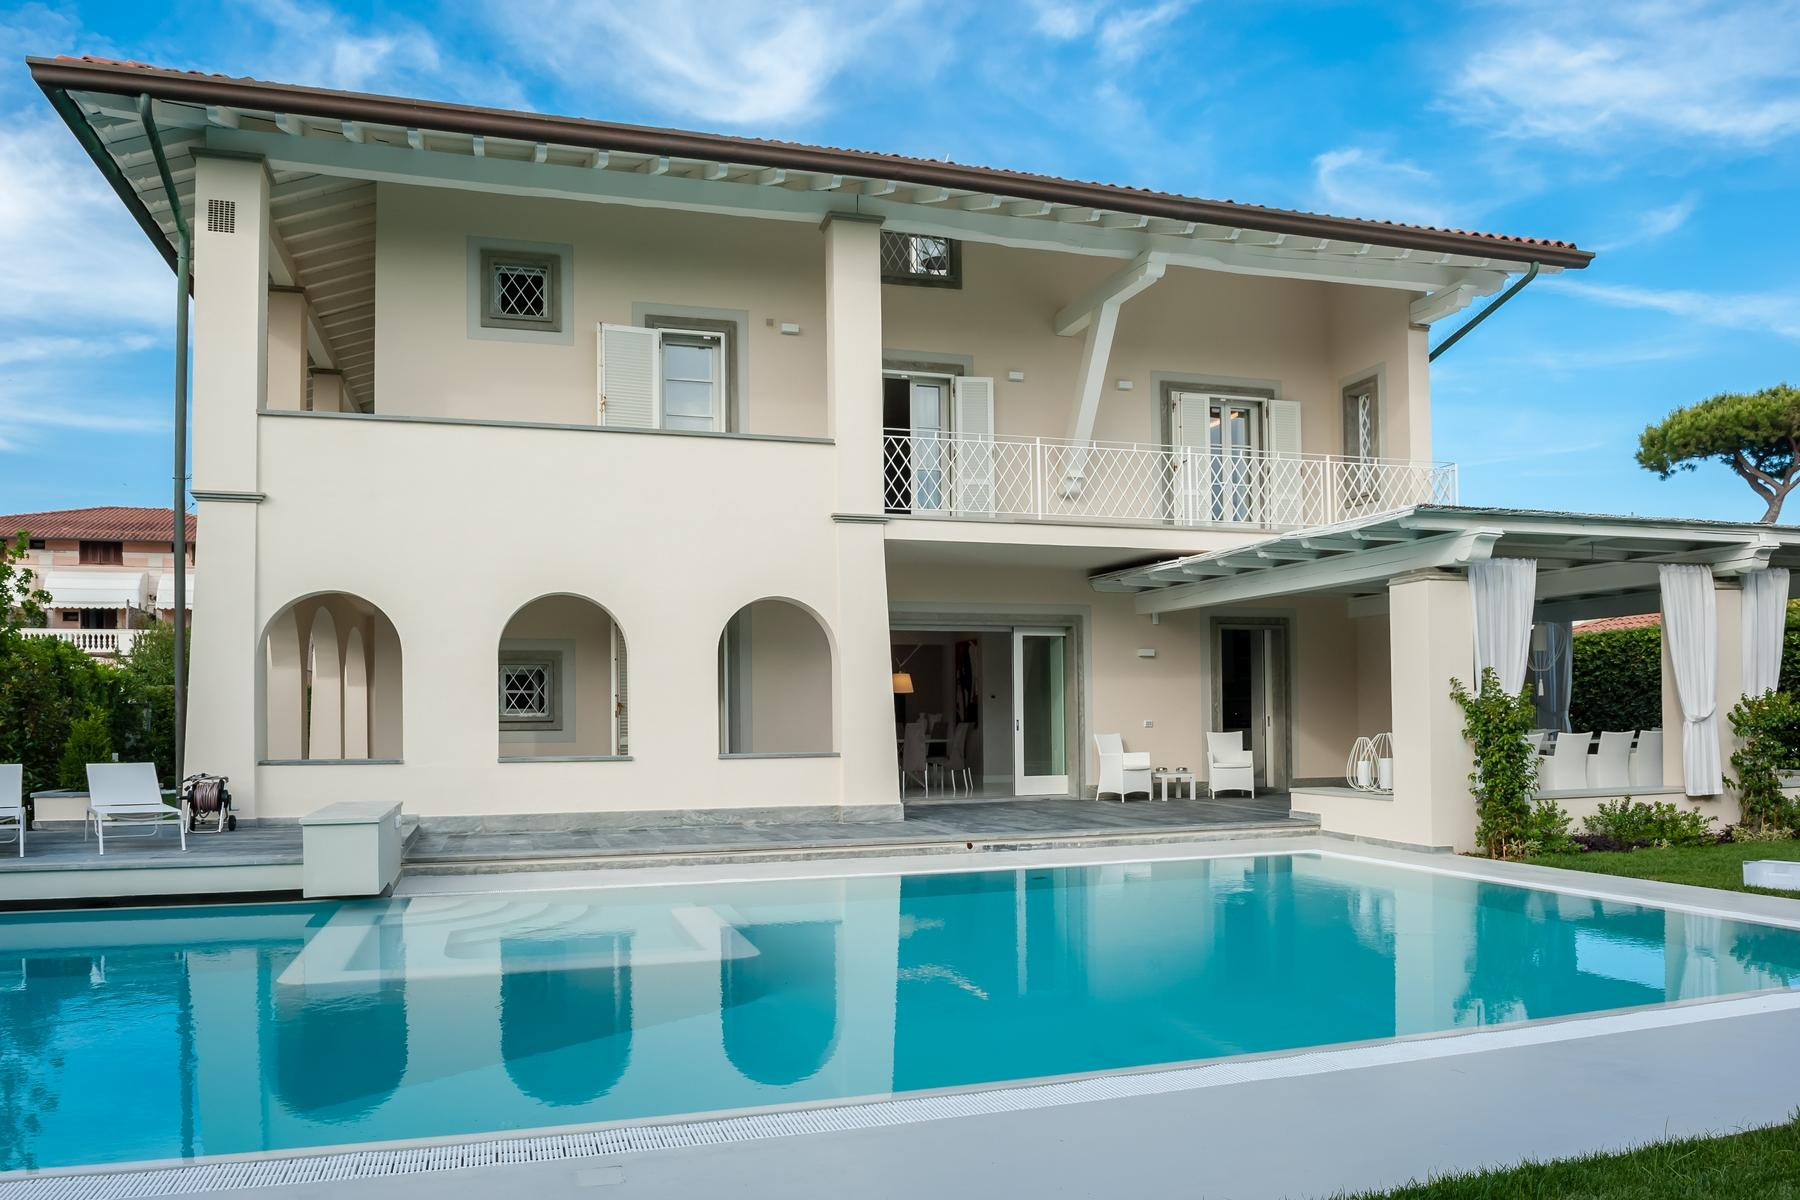 Splendid villa with swimming pool in Forte dei Marmi - 4